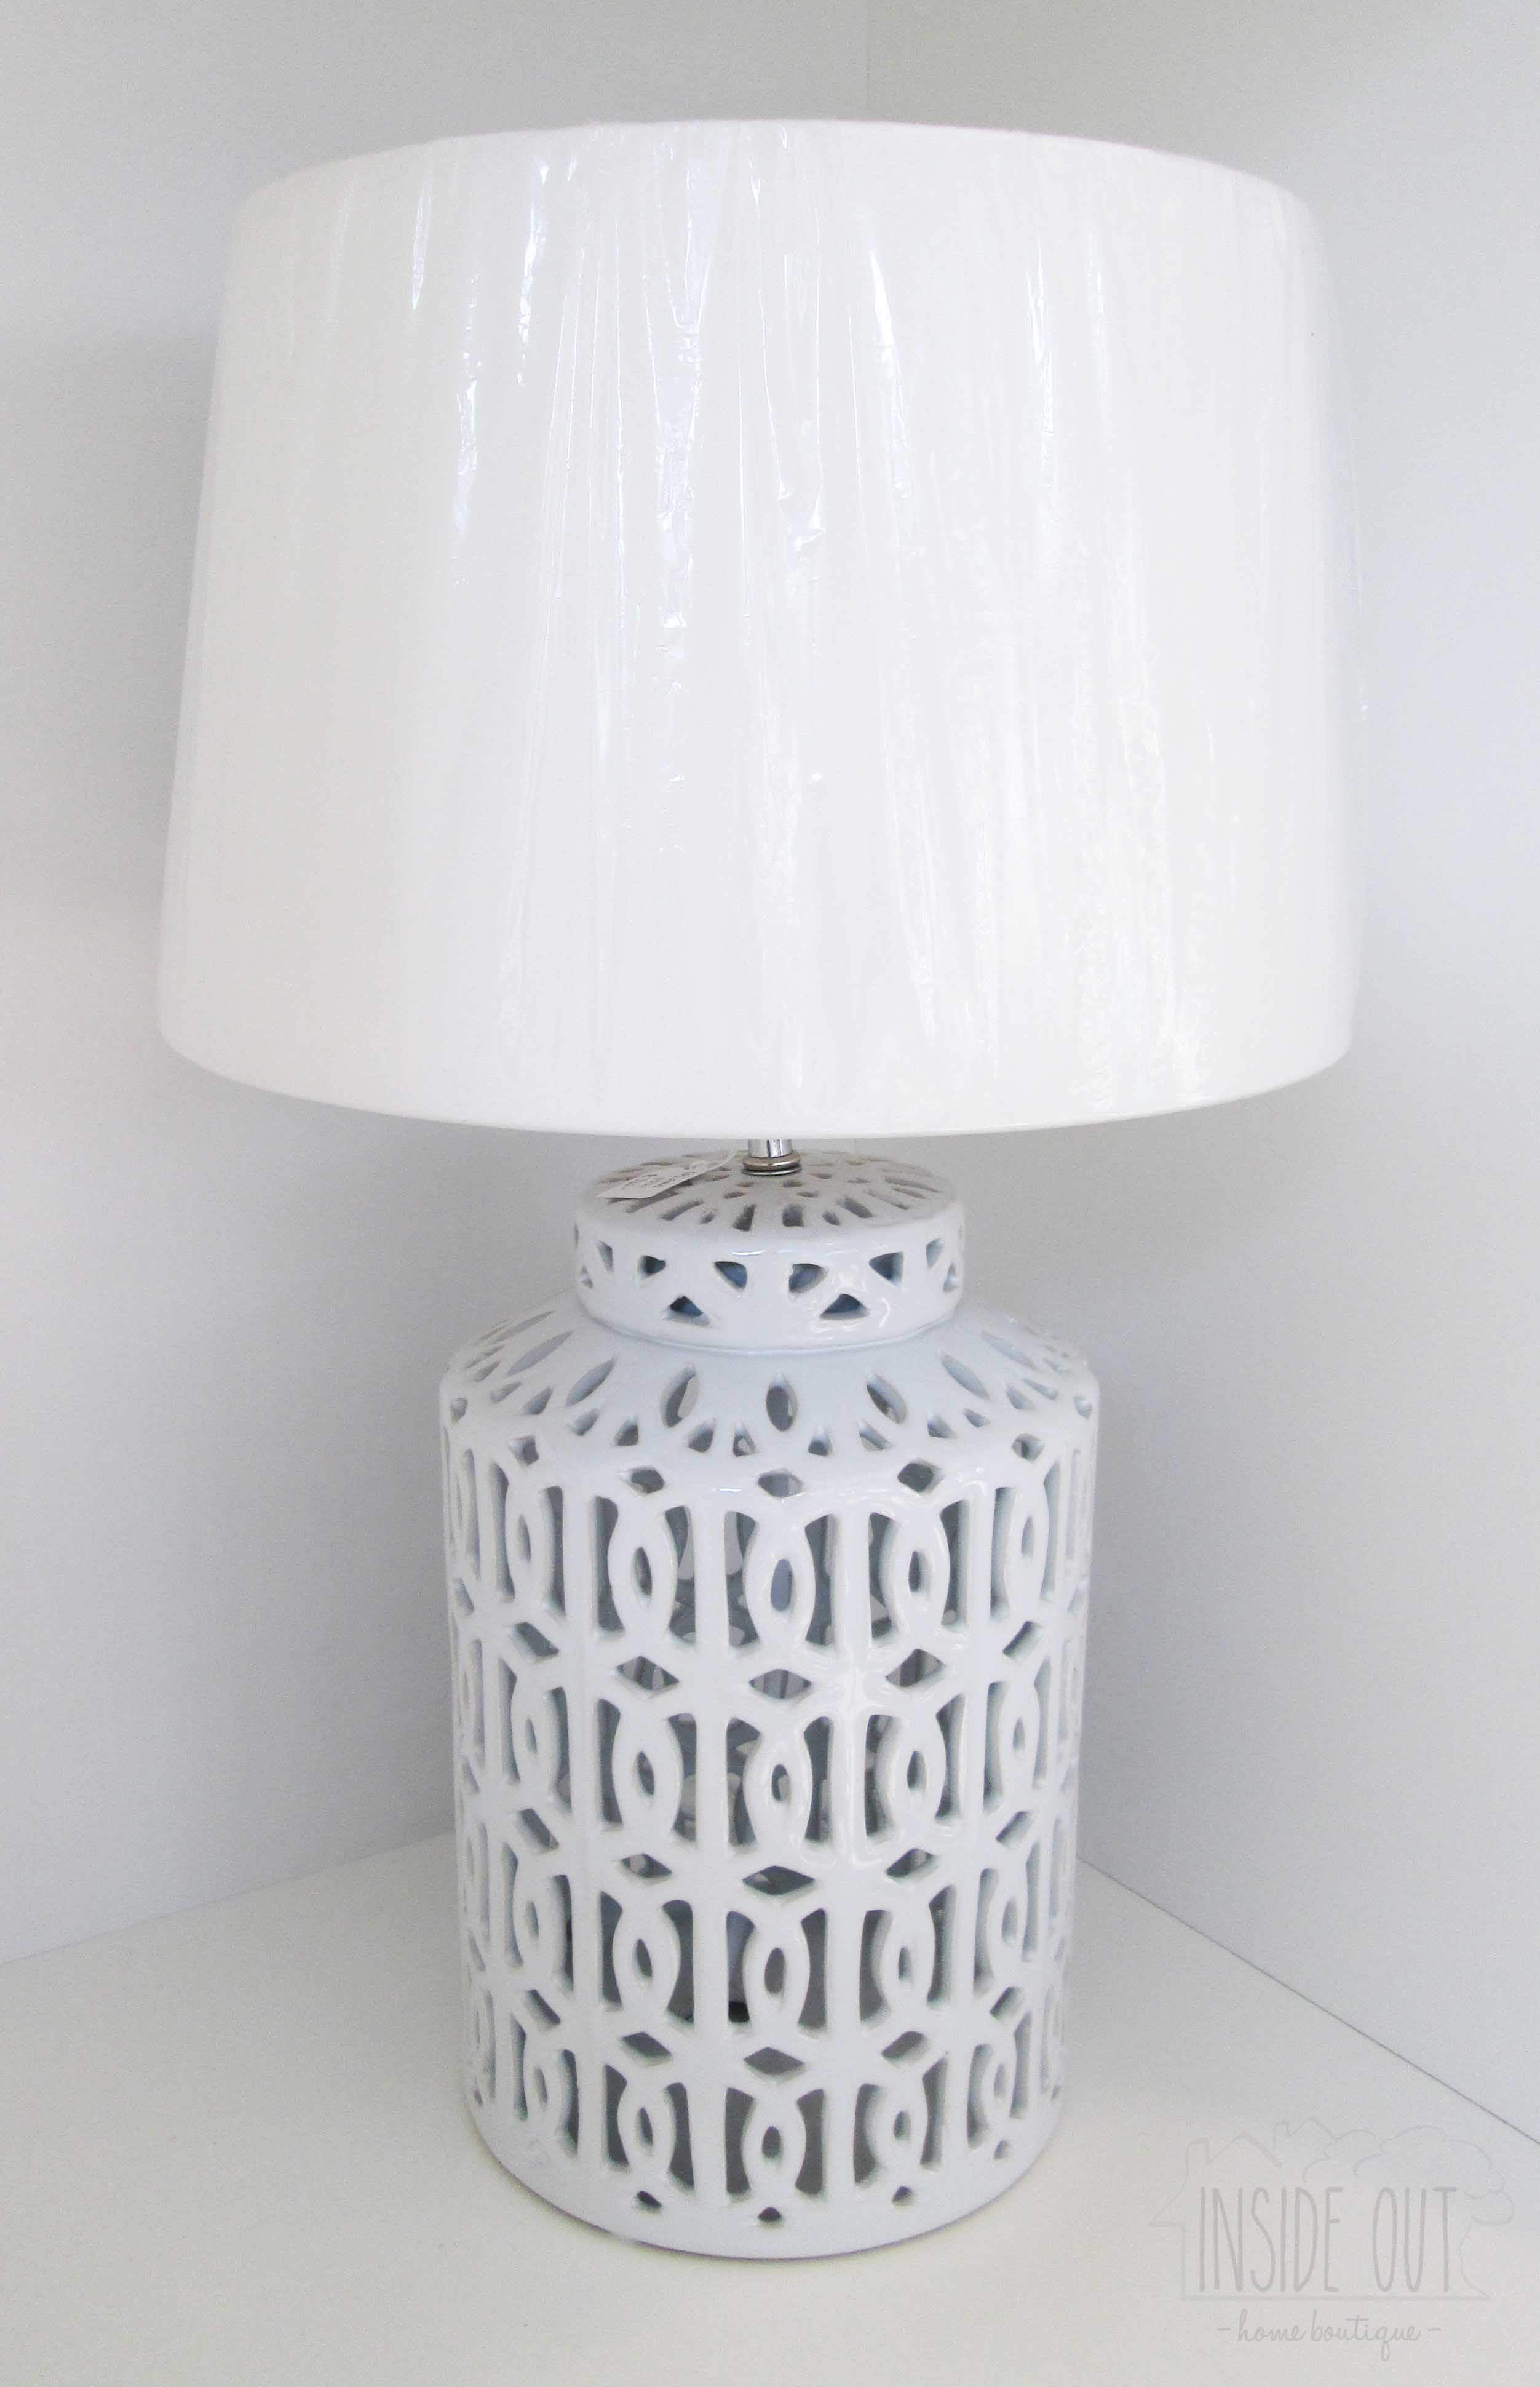 Available in Store - White Ceramic Lamp Base - Inside Out Home Boutique